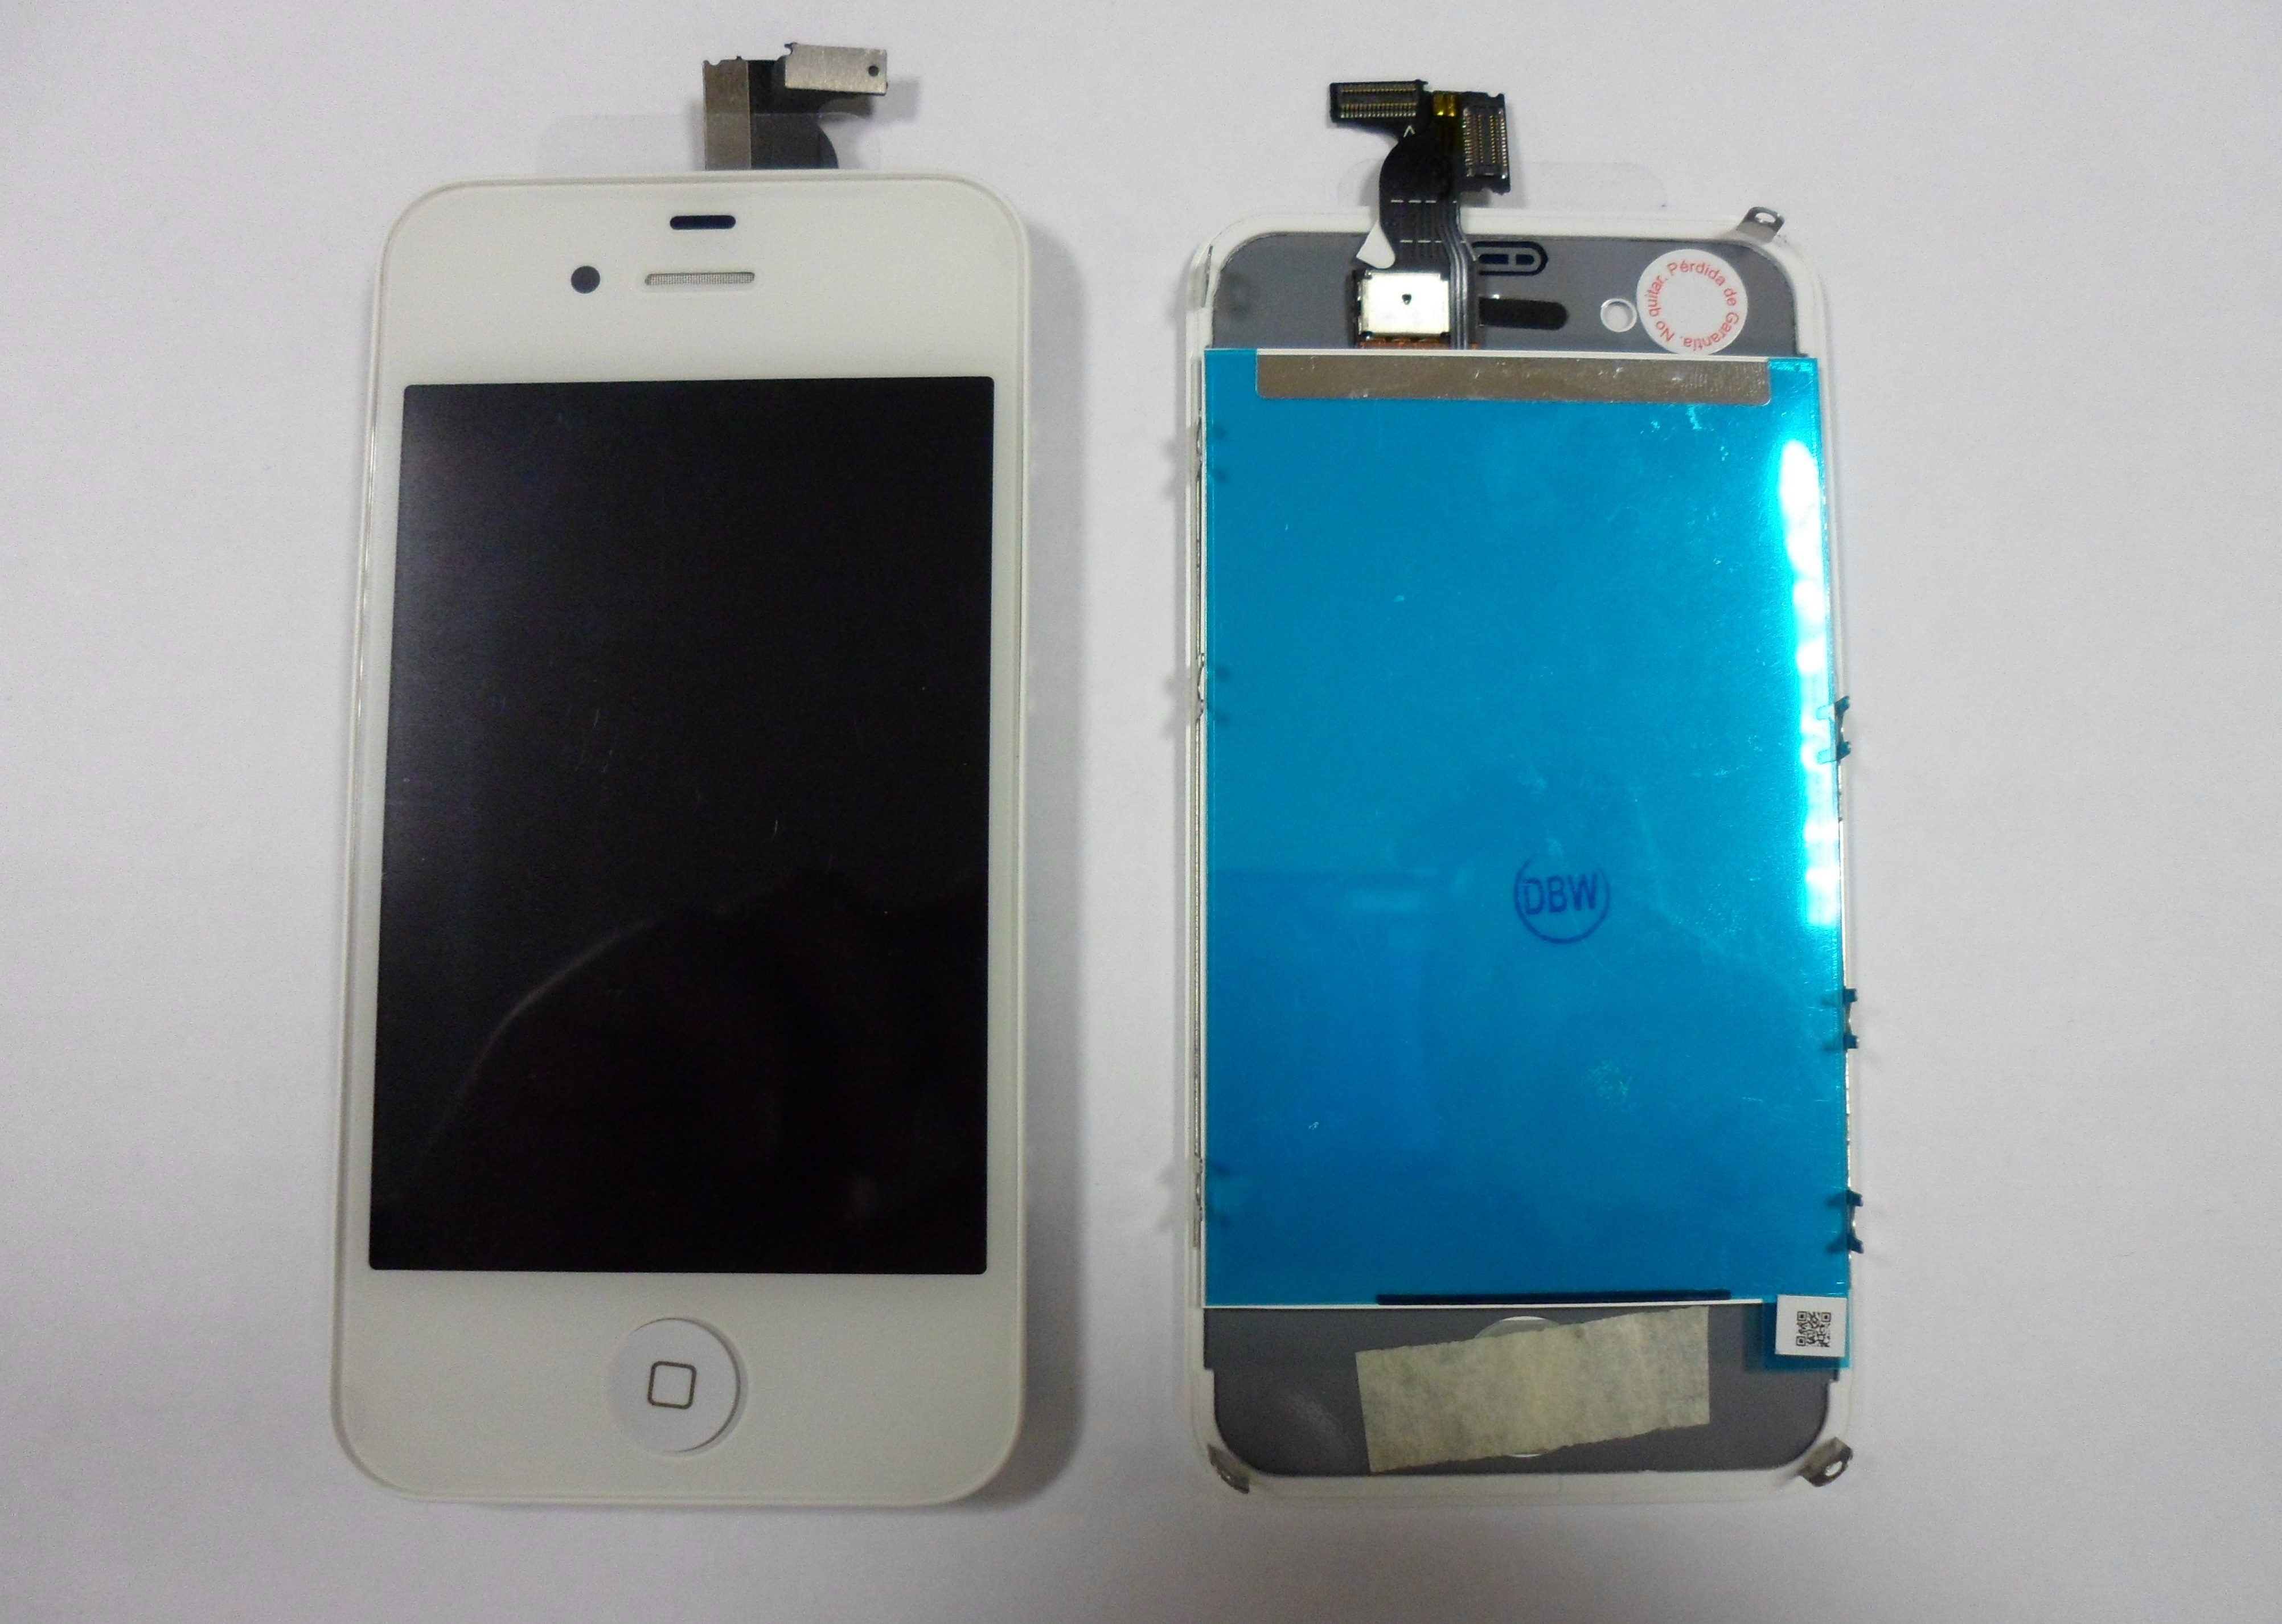 Repuesto-pantalla-lcd-touch-completa-para-apple-iphone-4g-blanco